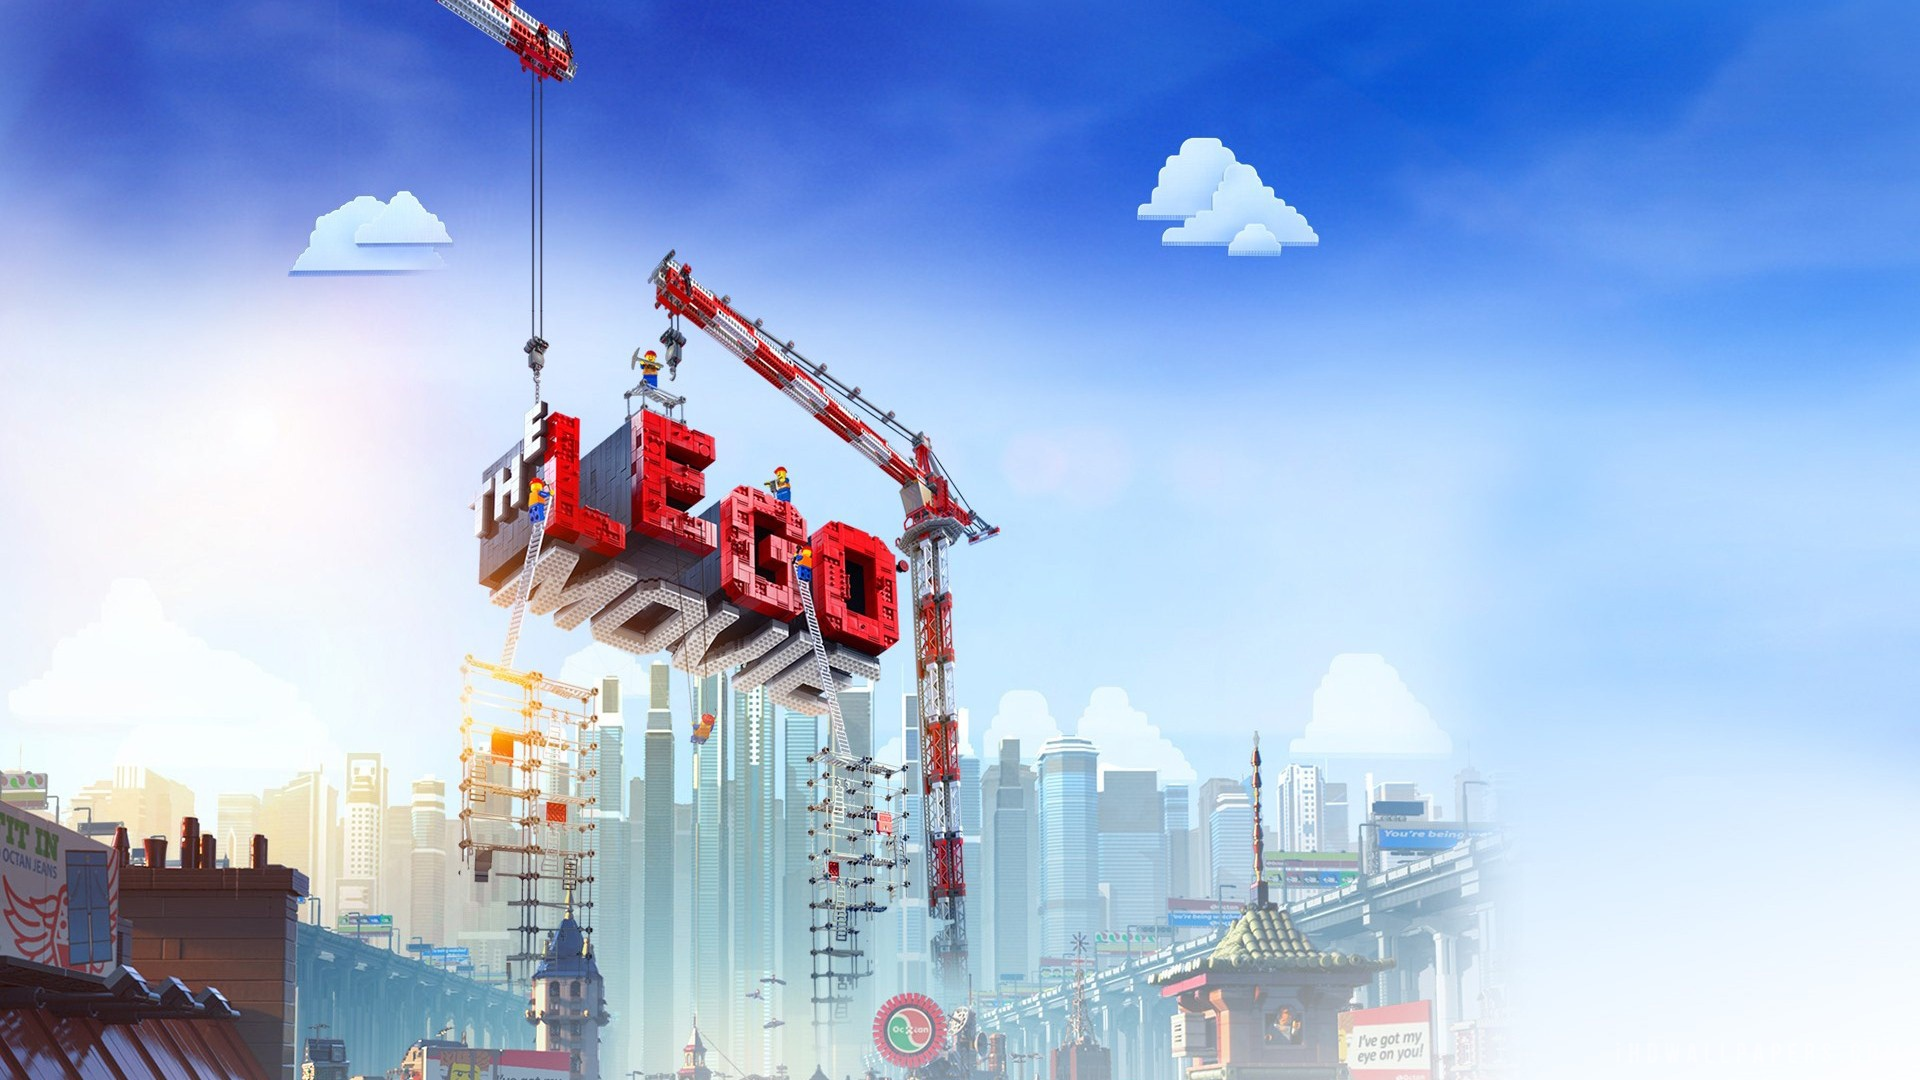 Hd Wallpapers Of S: The Lego Movie Wallpapers HD Backgrounds